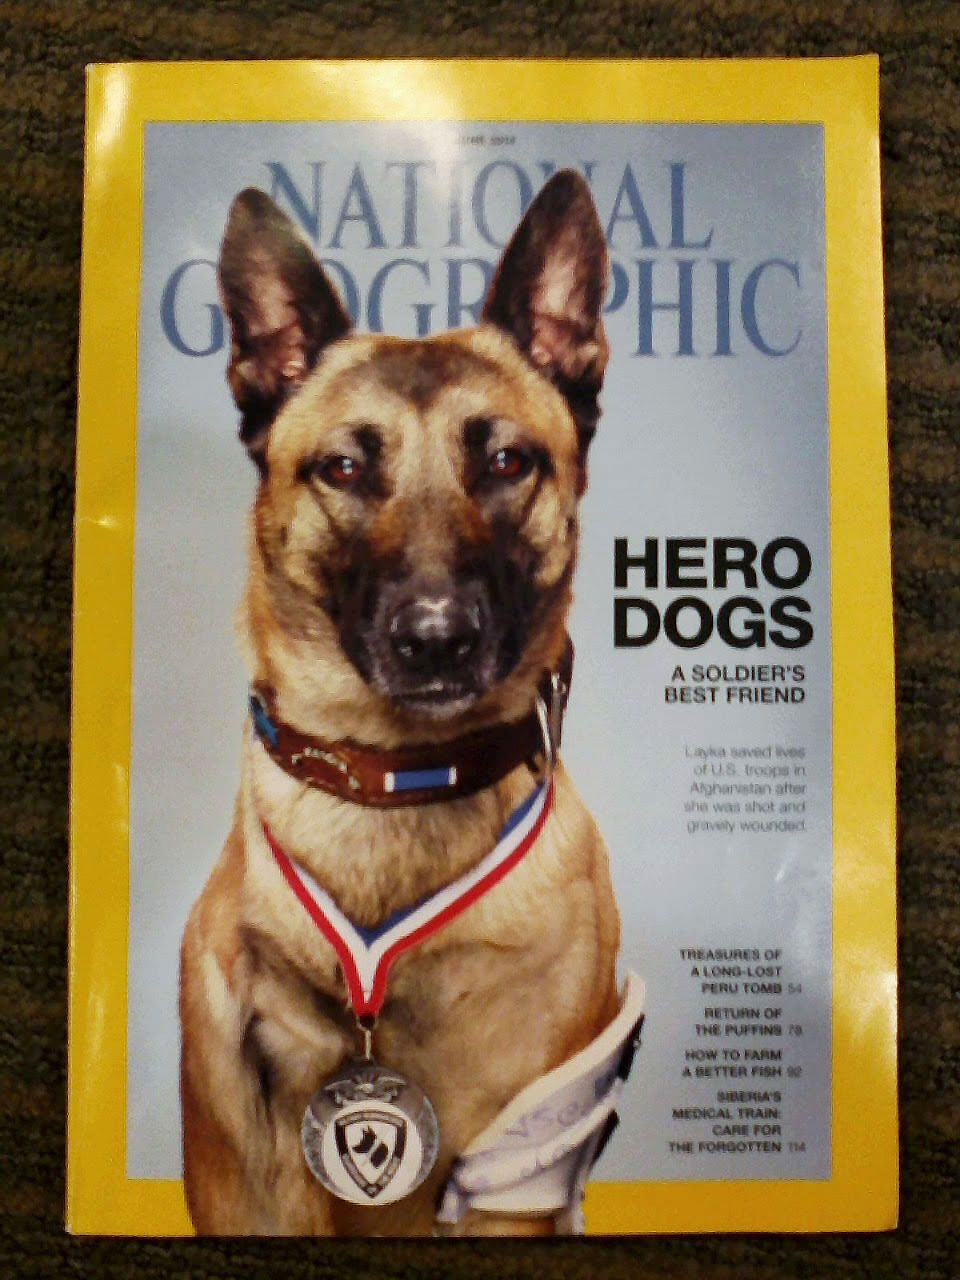 Top 10 most inspiring Hero Dogs